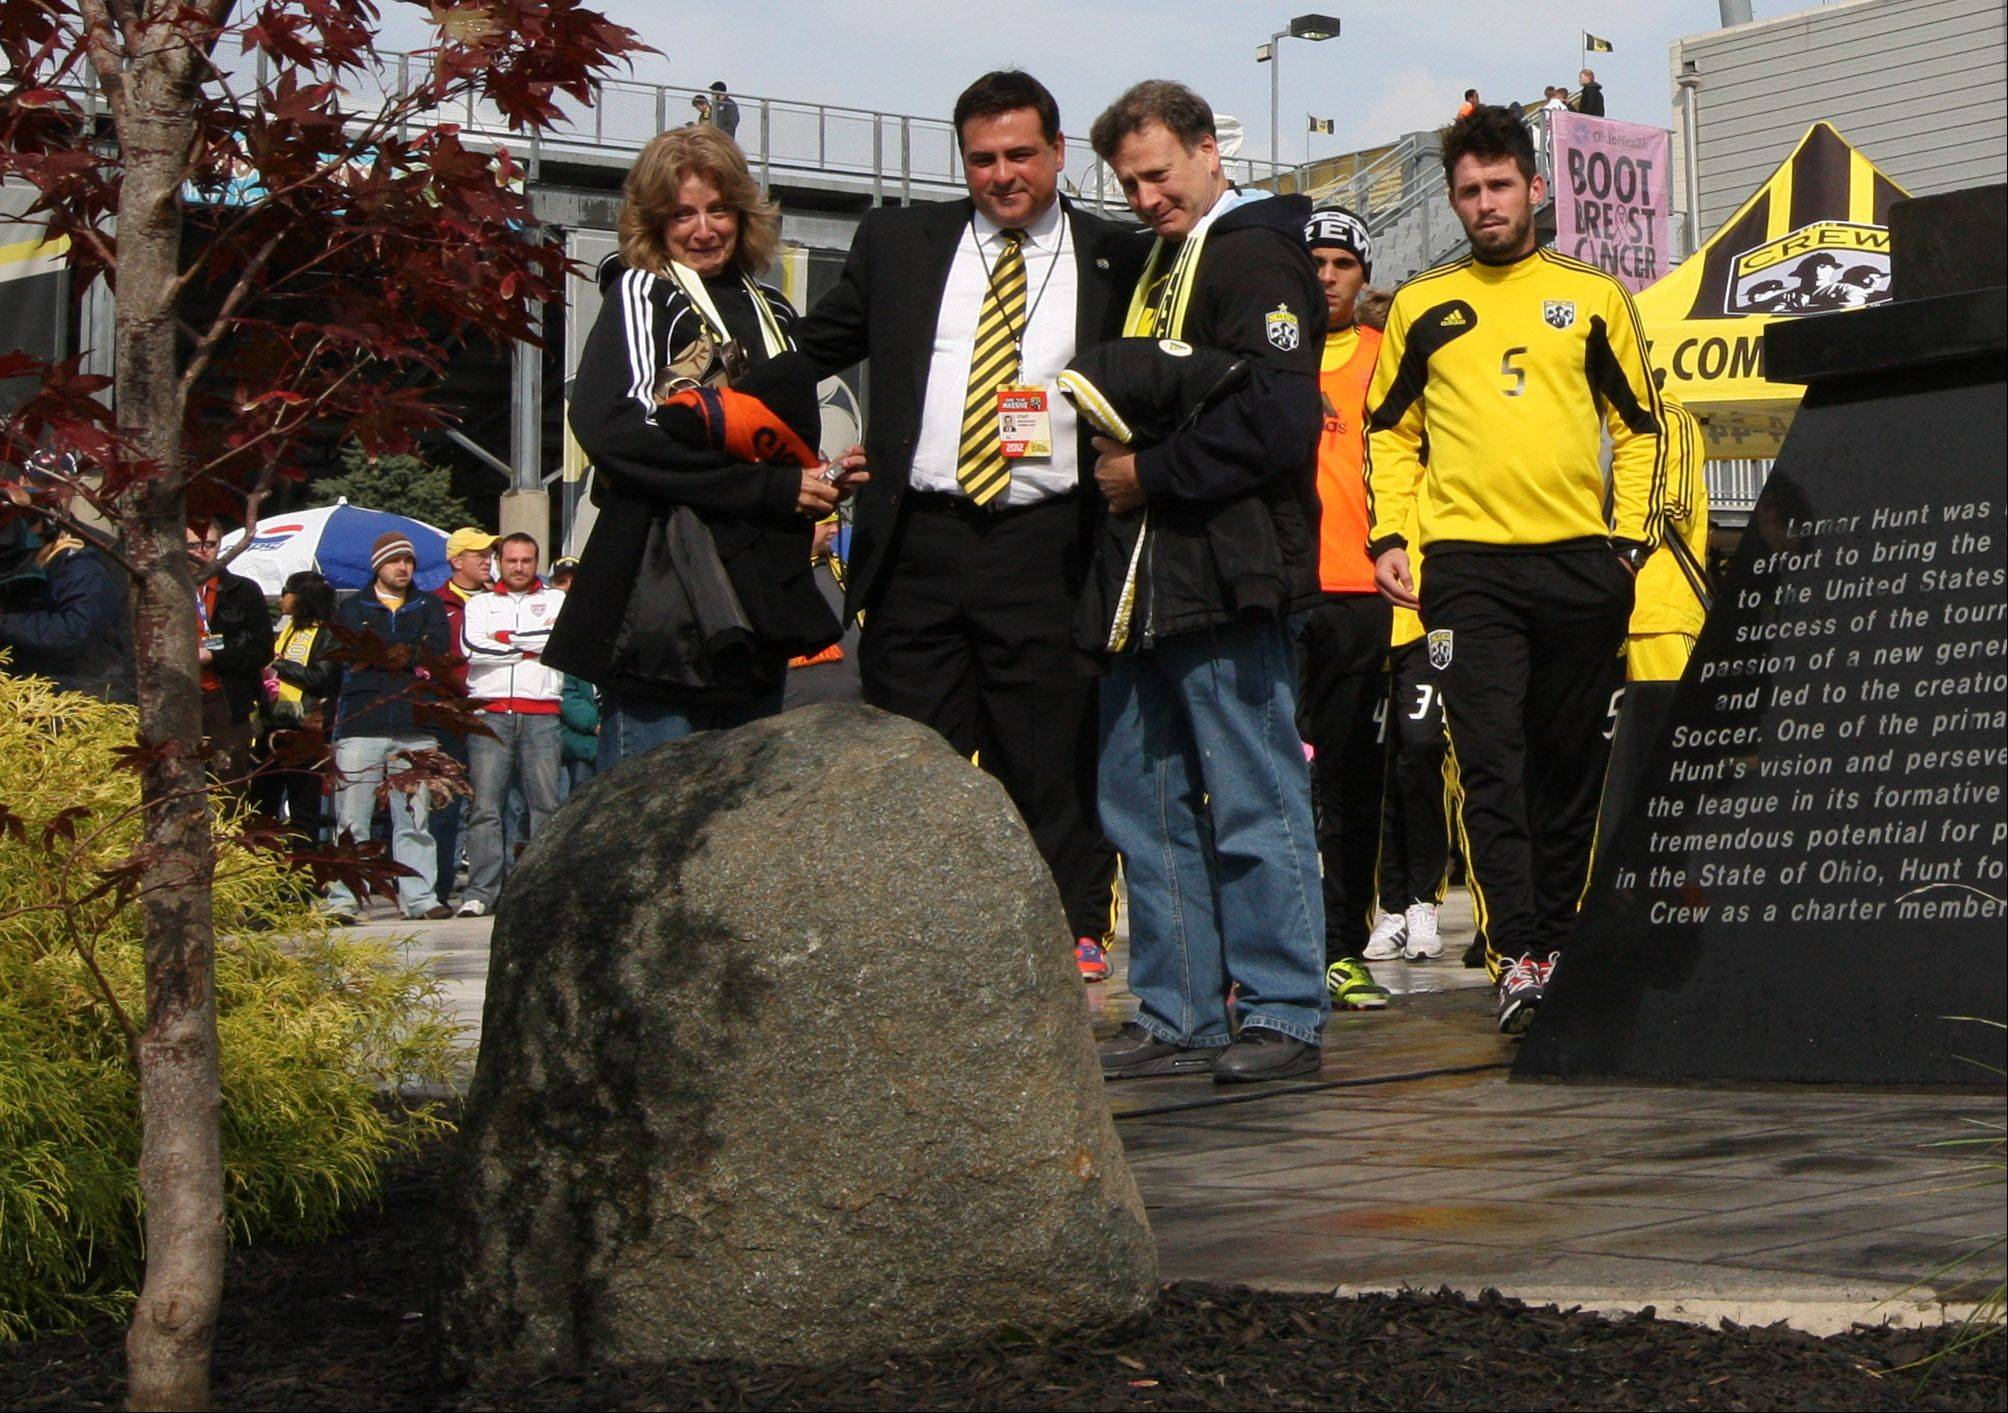 Crew president and general manager Mark McCullers stands between former Columbus Crew player Kirk Urso's parents, Sandy and Mike, after a dedication ceremony Sunday at Founder's Park to honor Kirk, who died at age of 22 of a congenital heart defect. The Crew has established a memorial fund in Urso's honor to support research and programming focused on congenital heart defects and sudden cardiac death in youth.